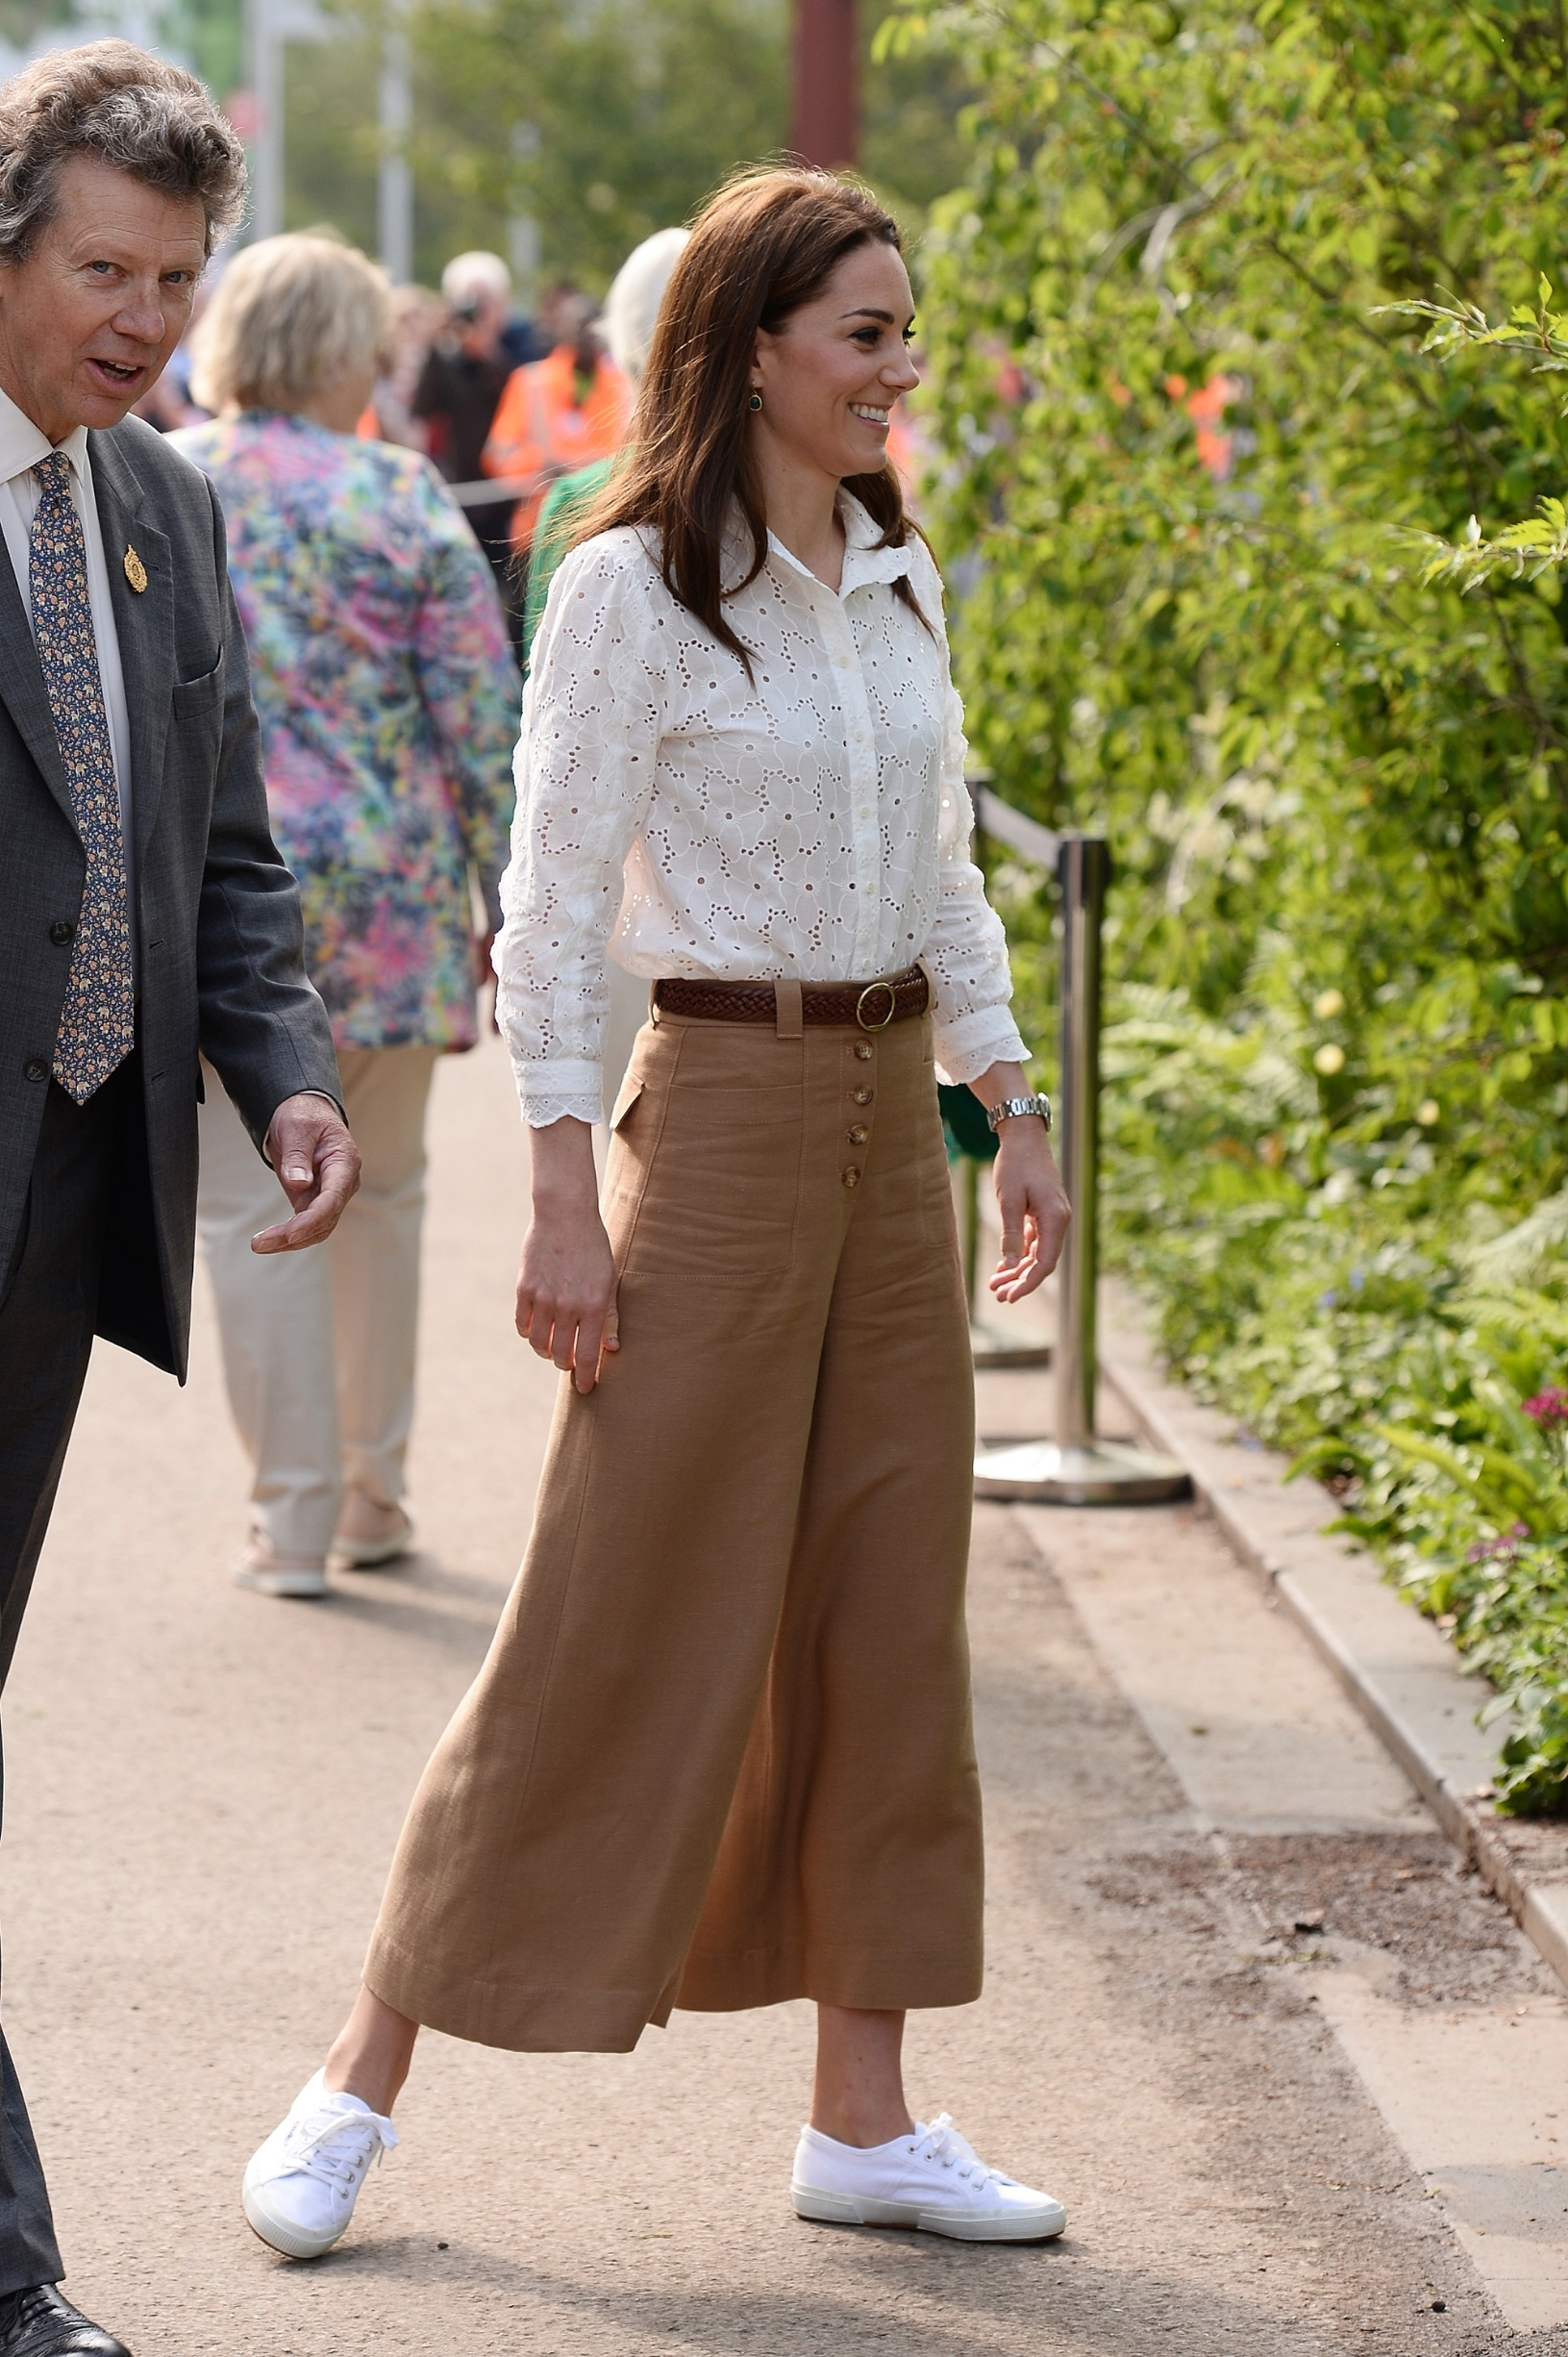 LONDON, ENGLAND - MAY 20: Catherine, Duchess of Cambridge attends the RHS Chelsea Flower Show 2019 press day at Chelsea Flower Show on May 20, 2019 in London, England. (Photo by Jeff Spicer/Getty Images)